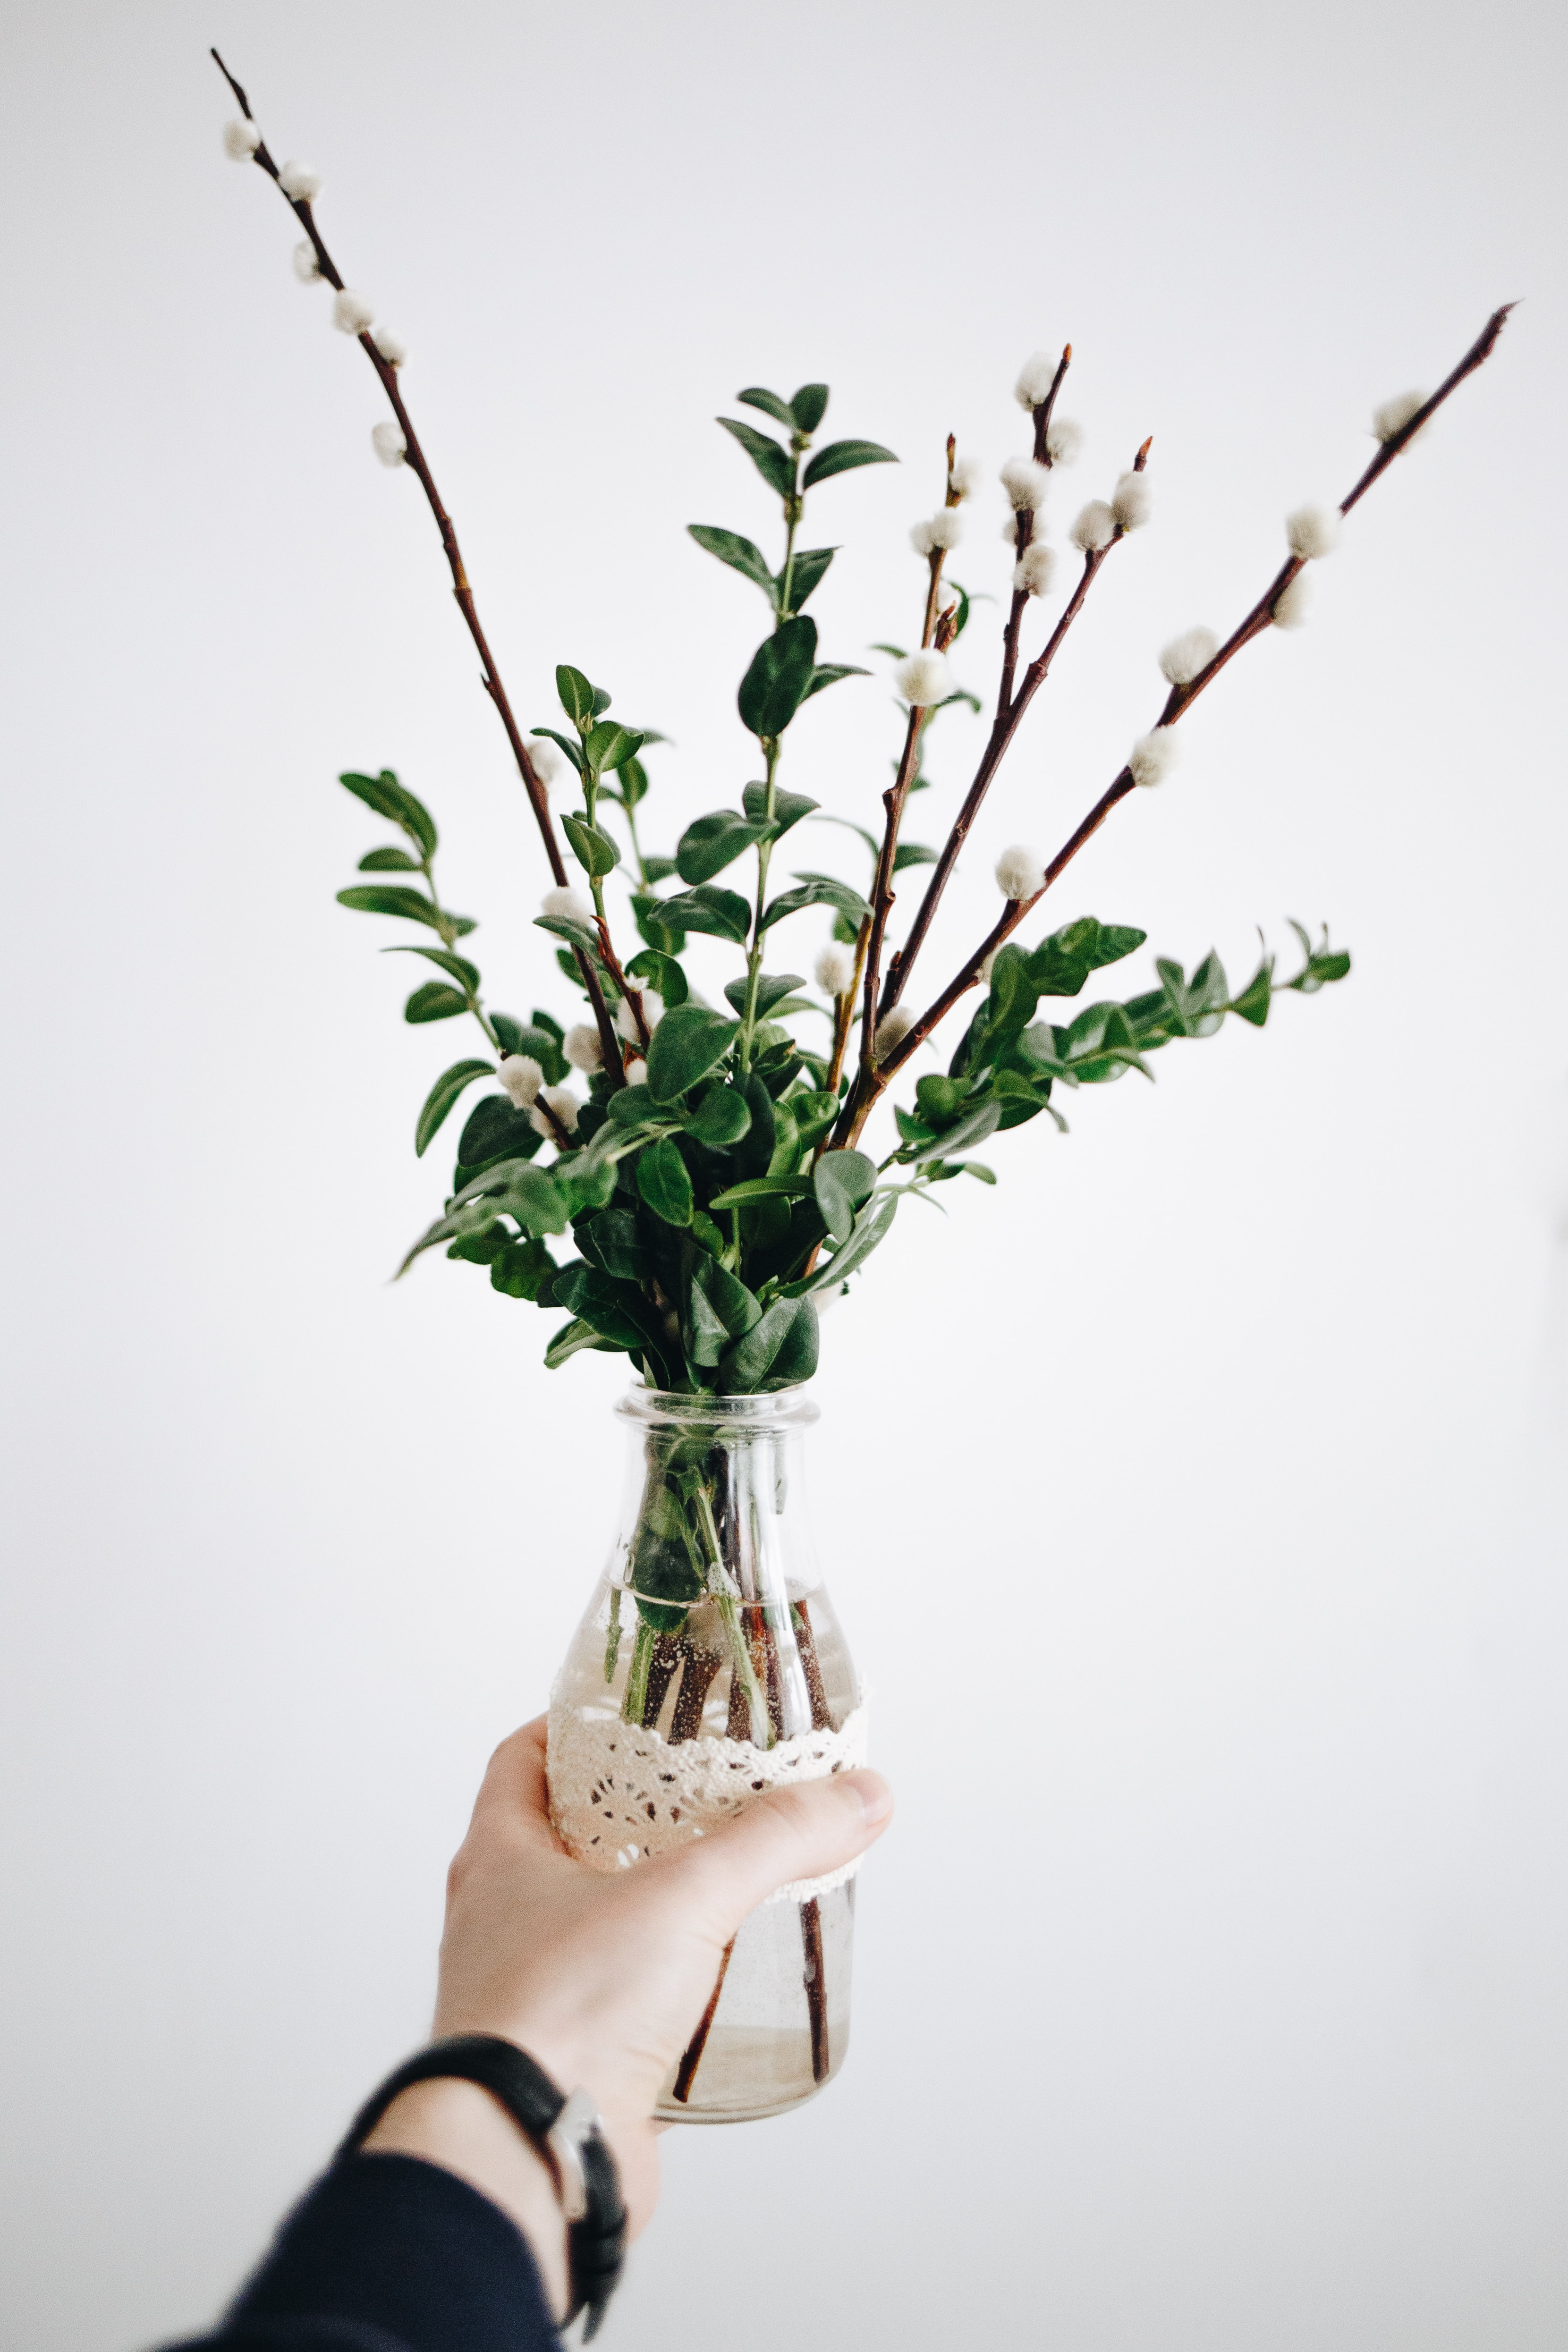 person holding clear glass bottle with plant